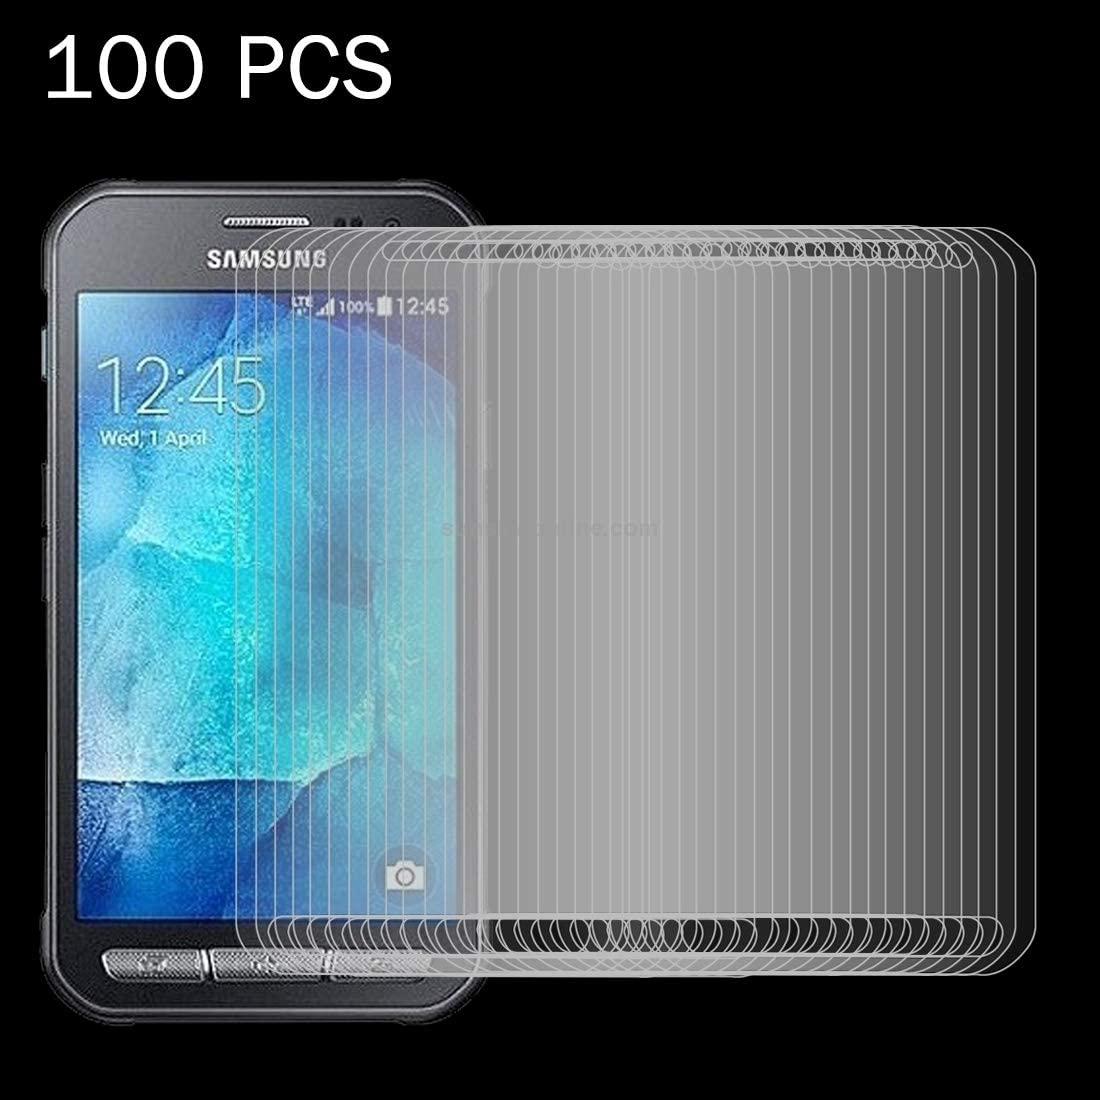 GzPuluz Glass Protector Film 100 PCS for Galaxy Xcover 4 G390F 0.26mm 9H Surface Hardness Explosion-Proof Tempered Glass Screen Film